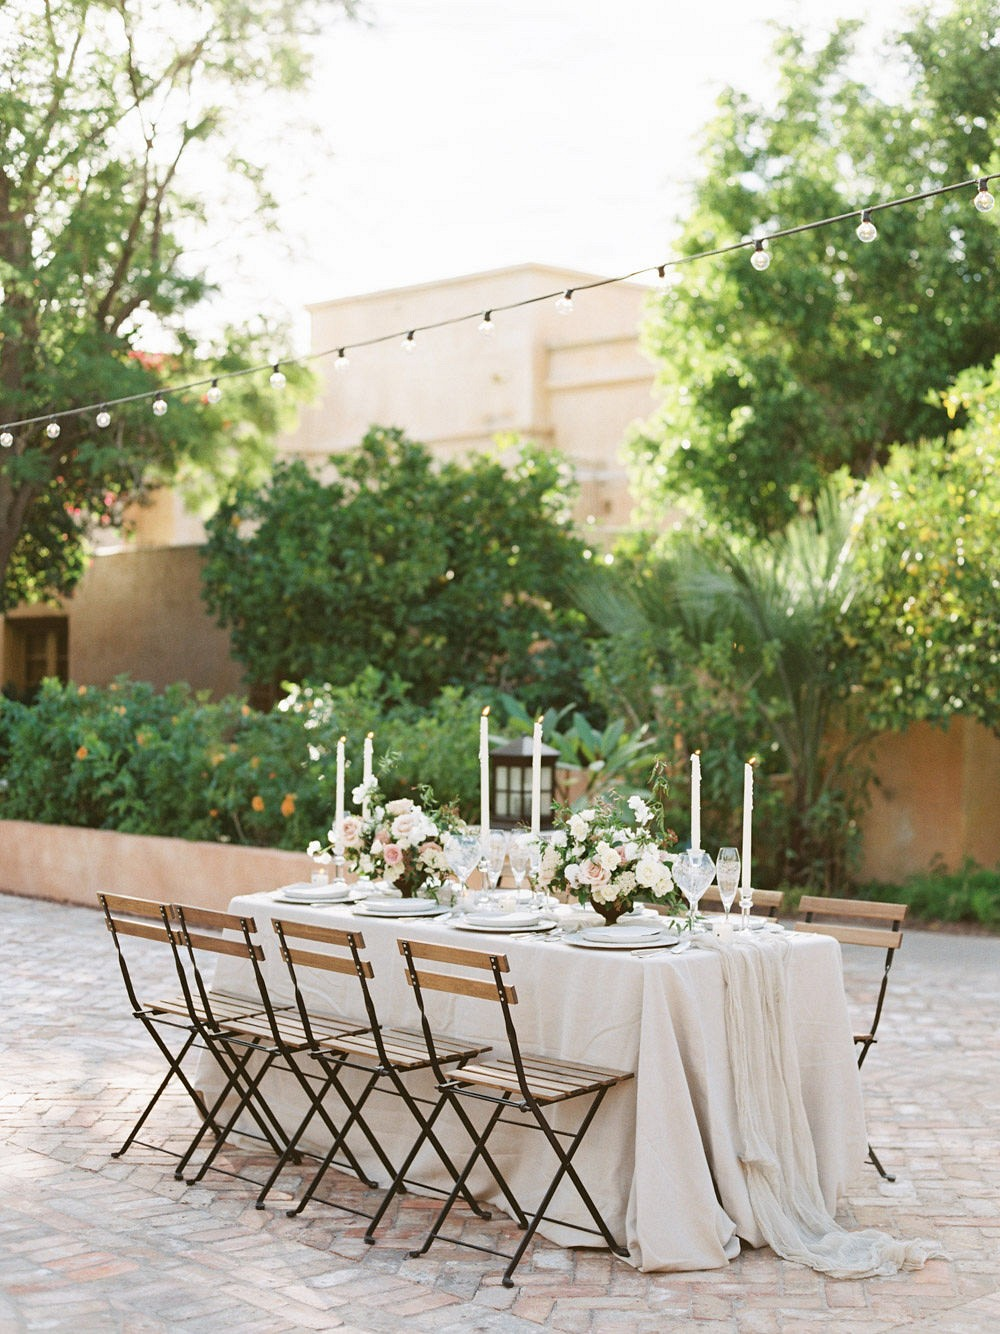 Desert inspired wedding ideas with blush roses and European influences